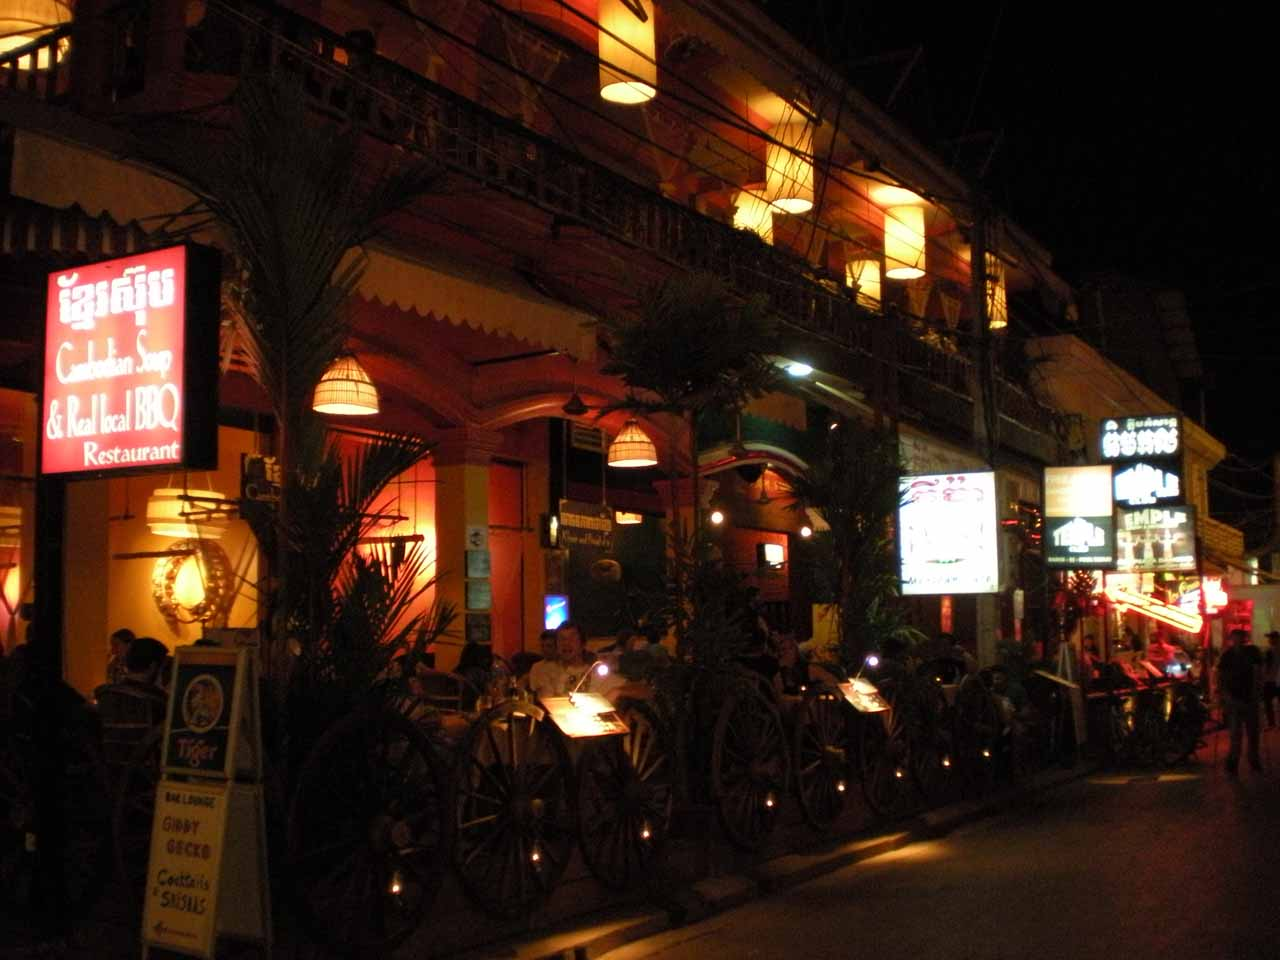 Busy scene at night in Siem Reap